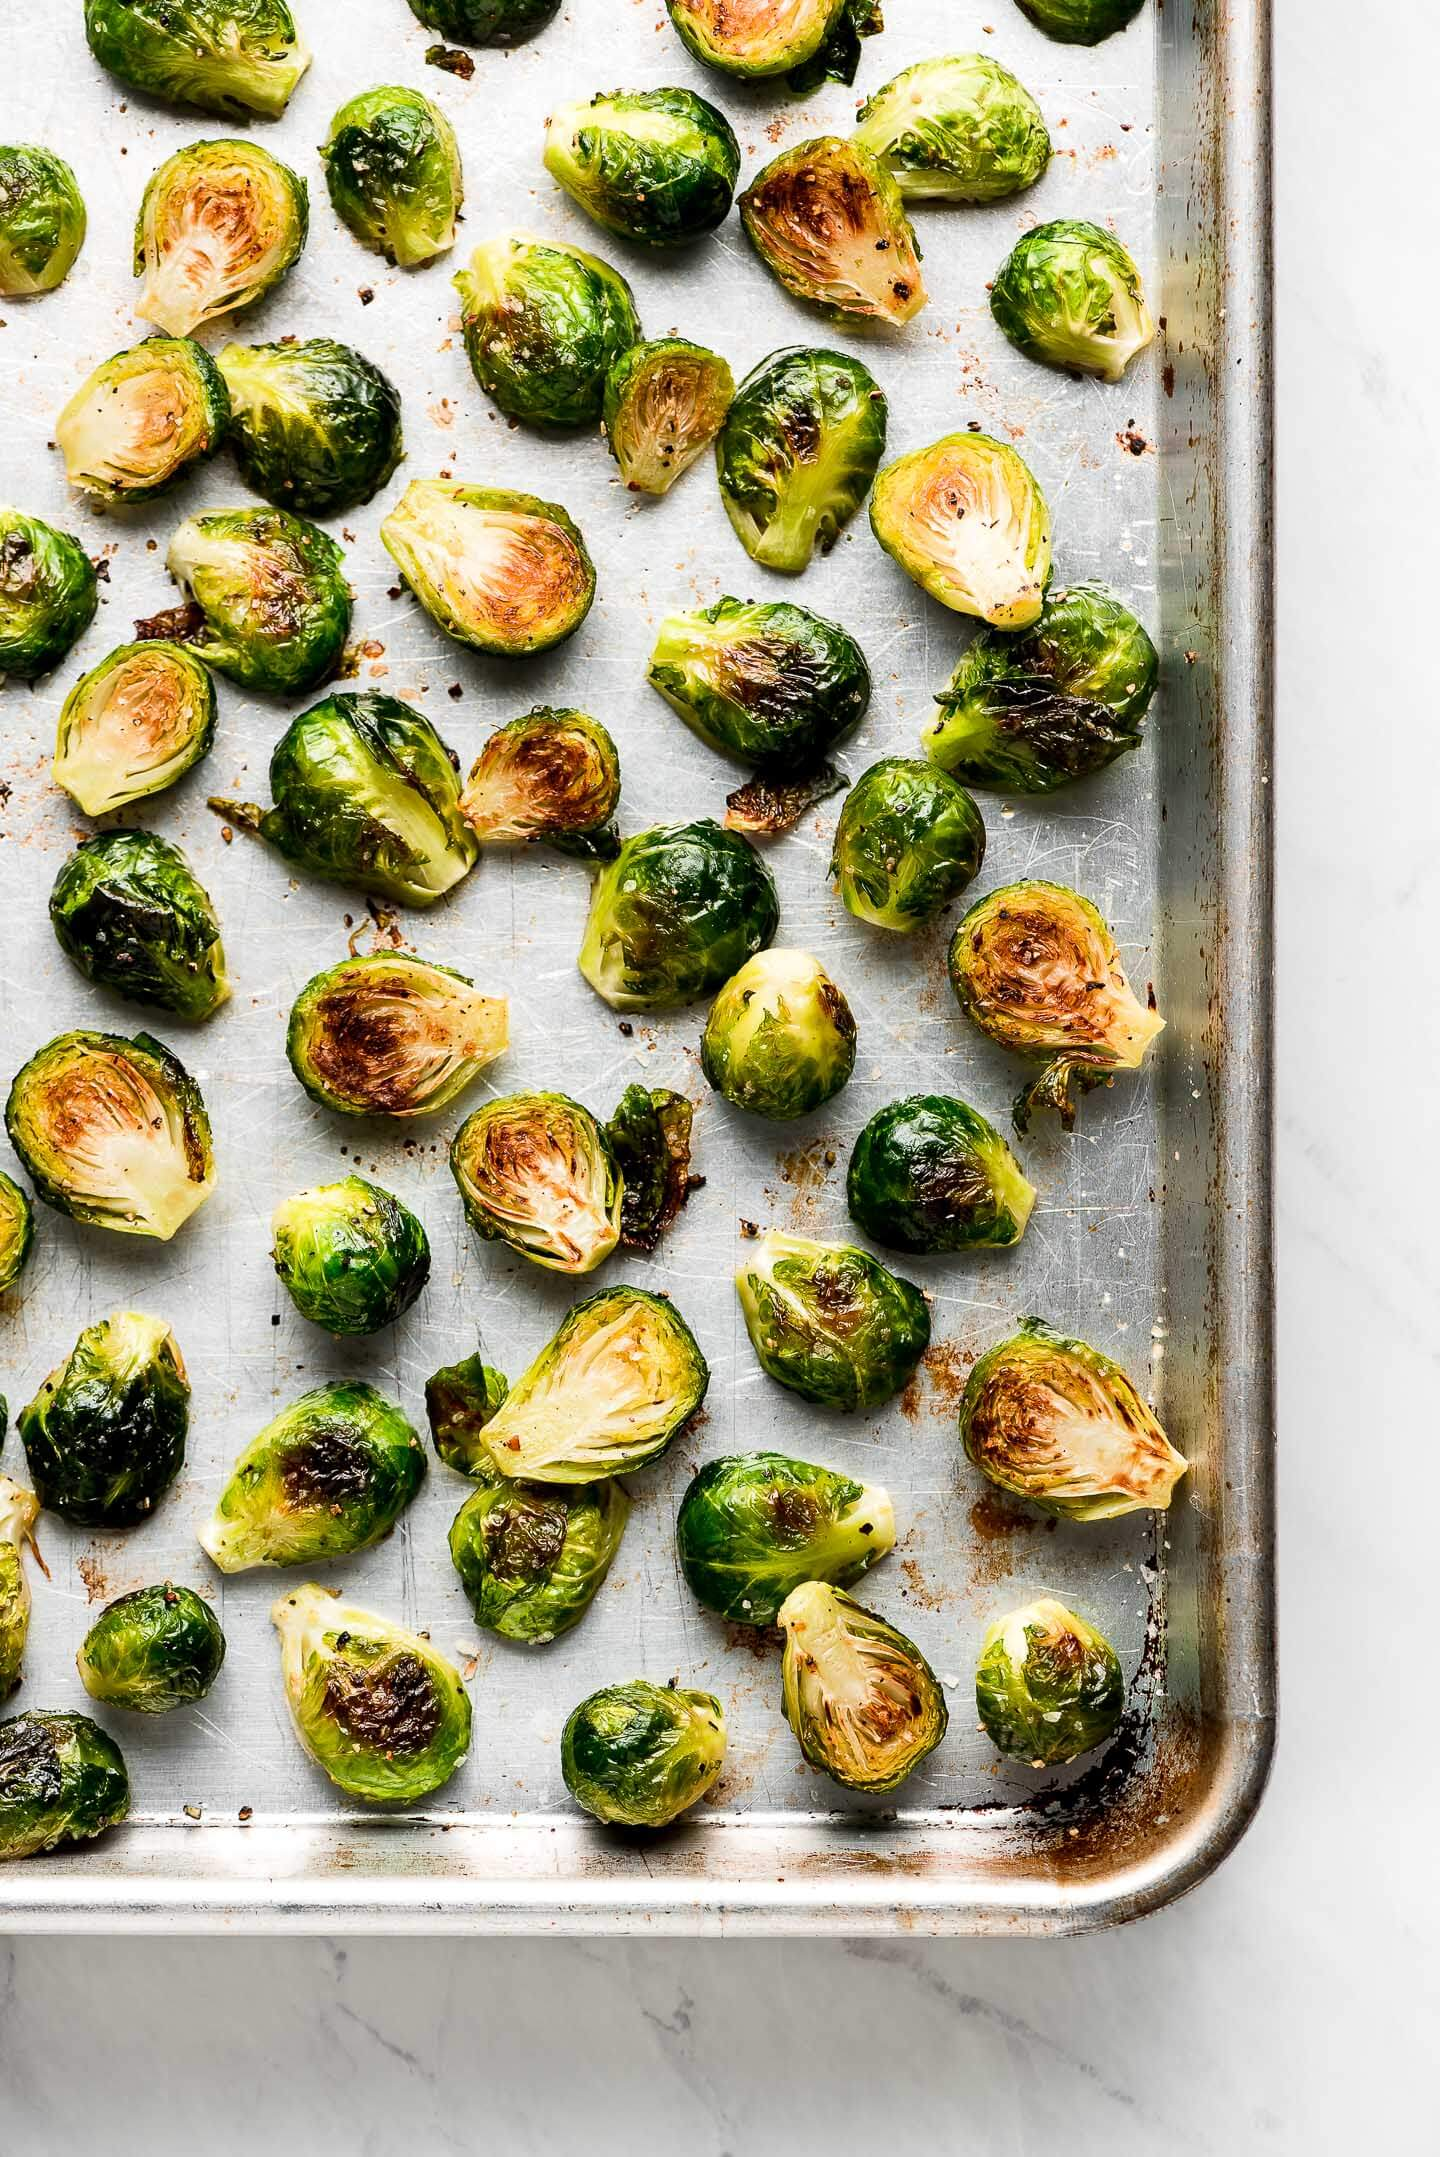 Roasted Brussel Sprouts on a baking sheet.